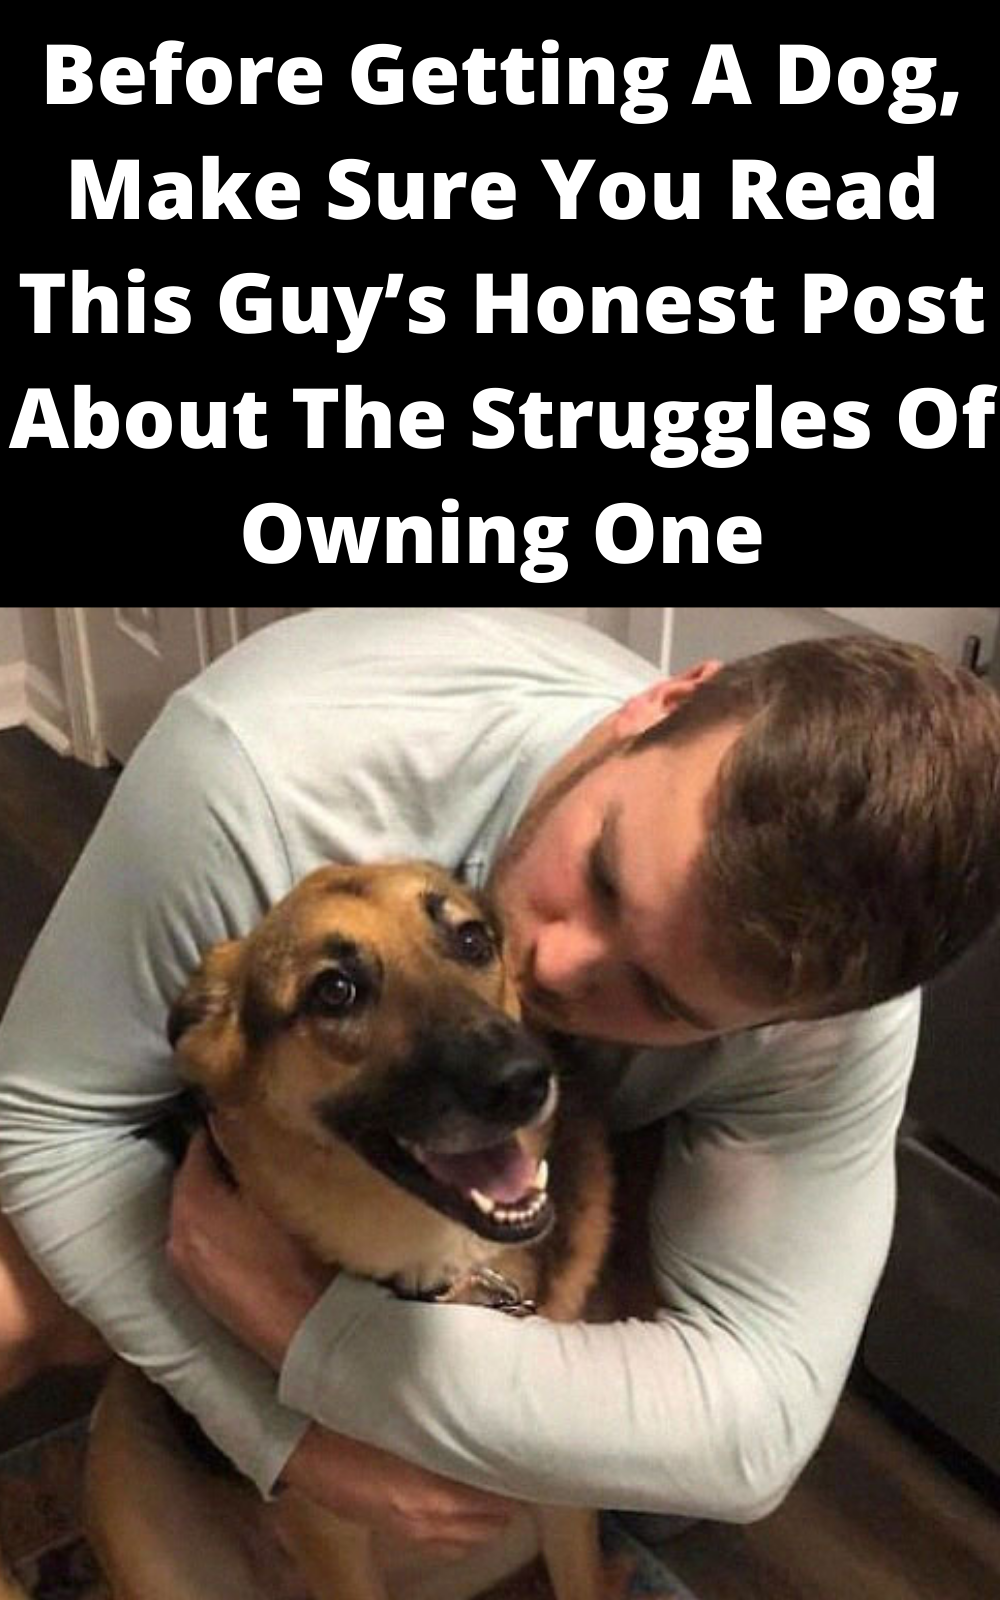 Before Getting A Dog, Make Sure You Read This Guy's Honest